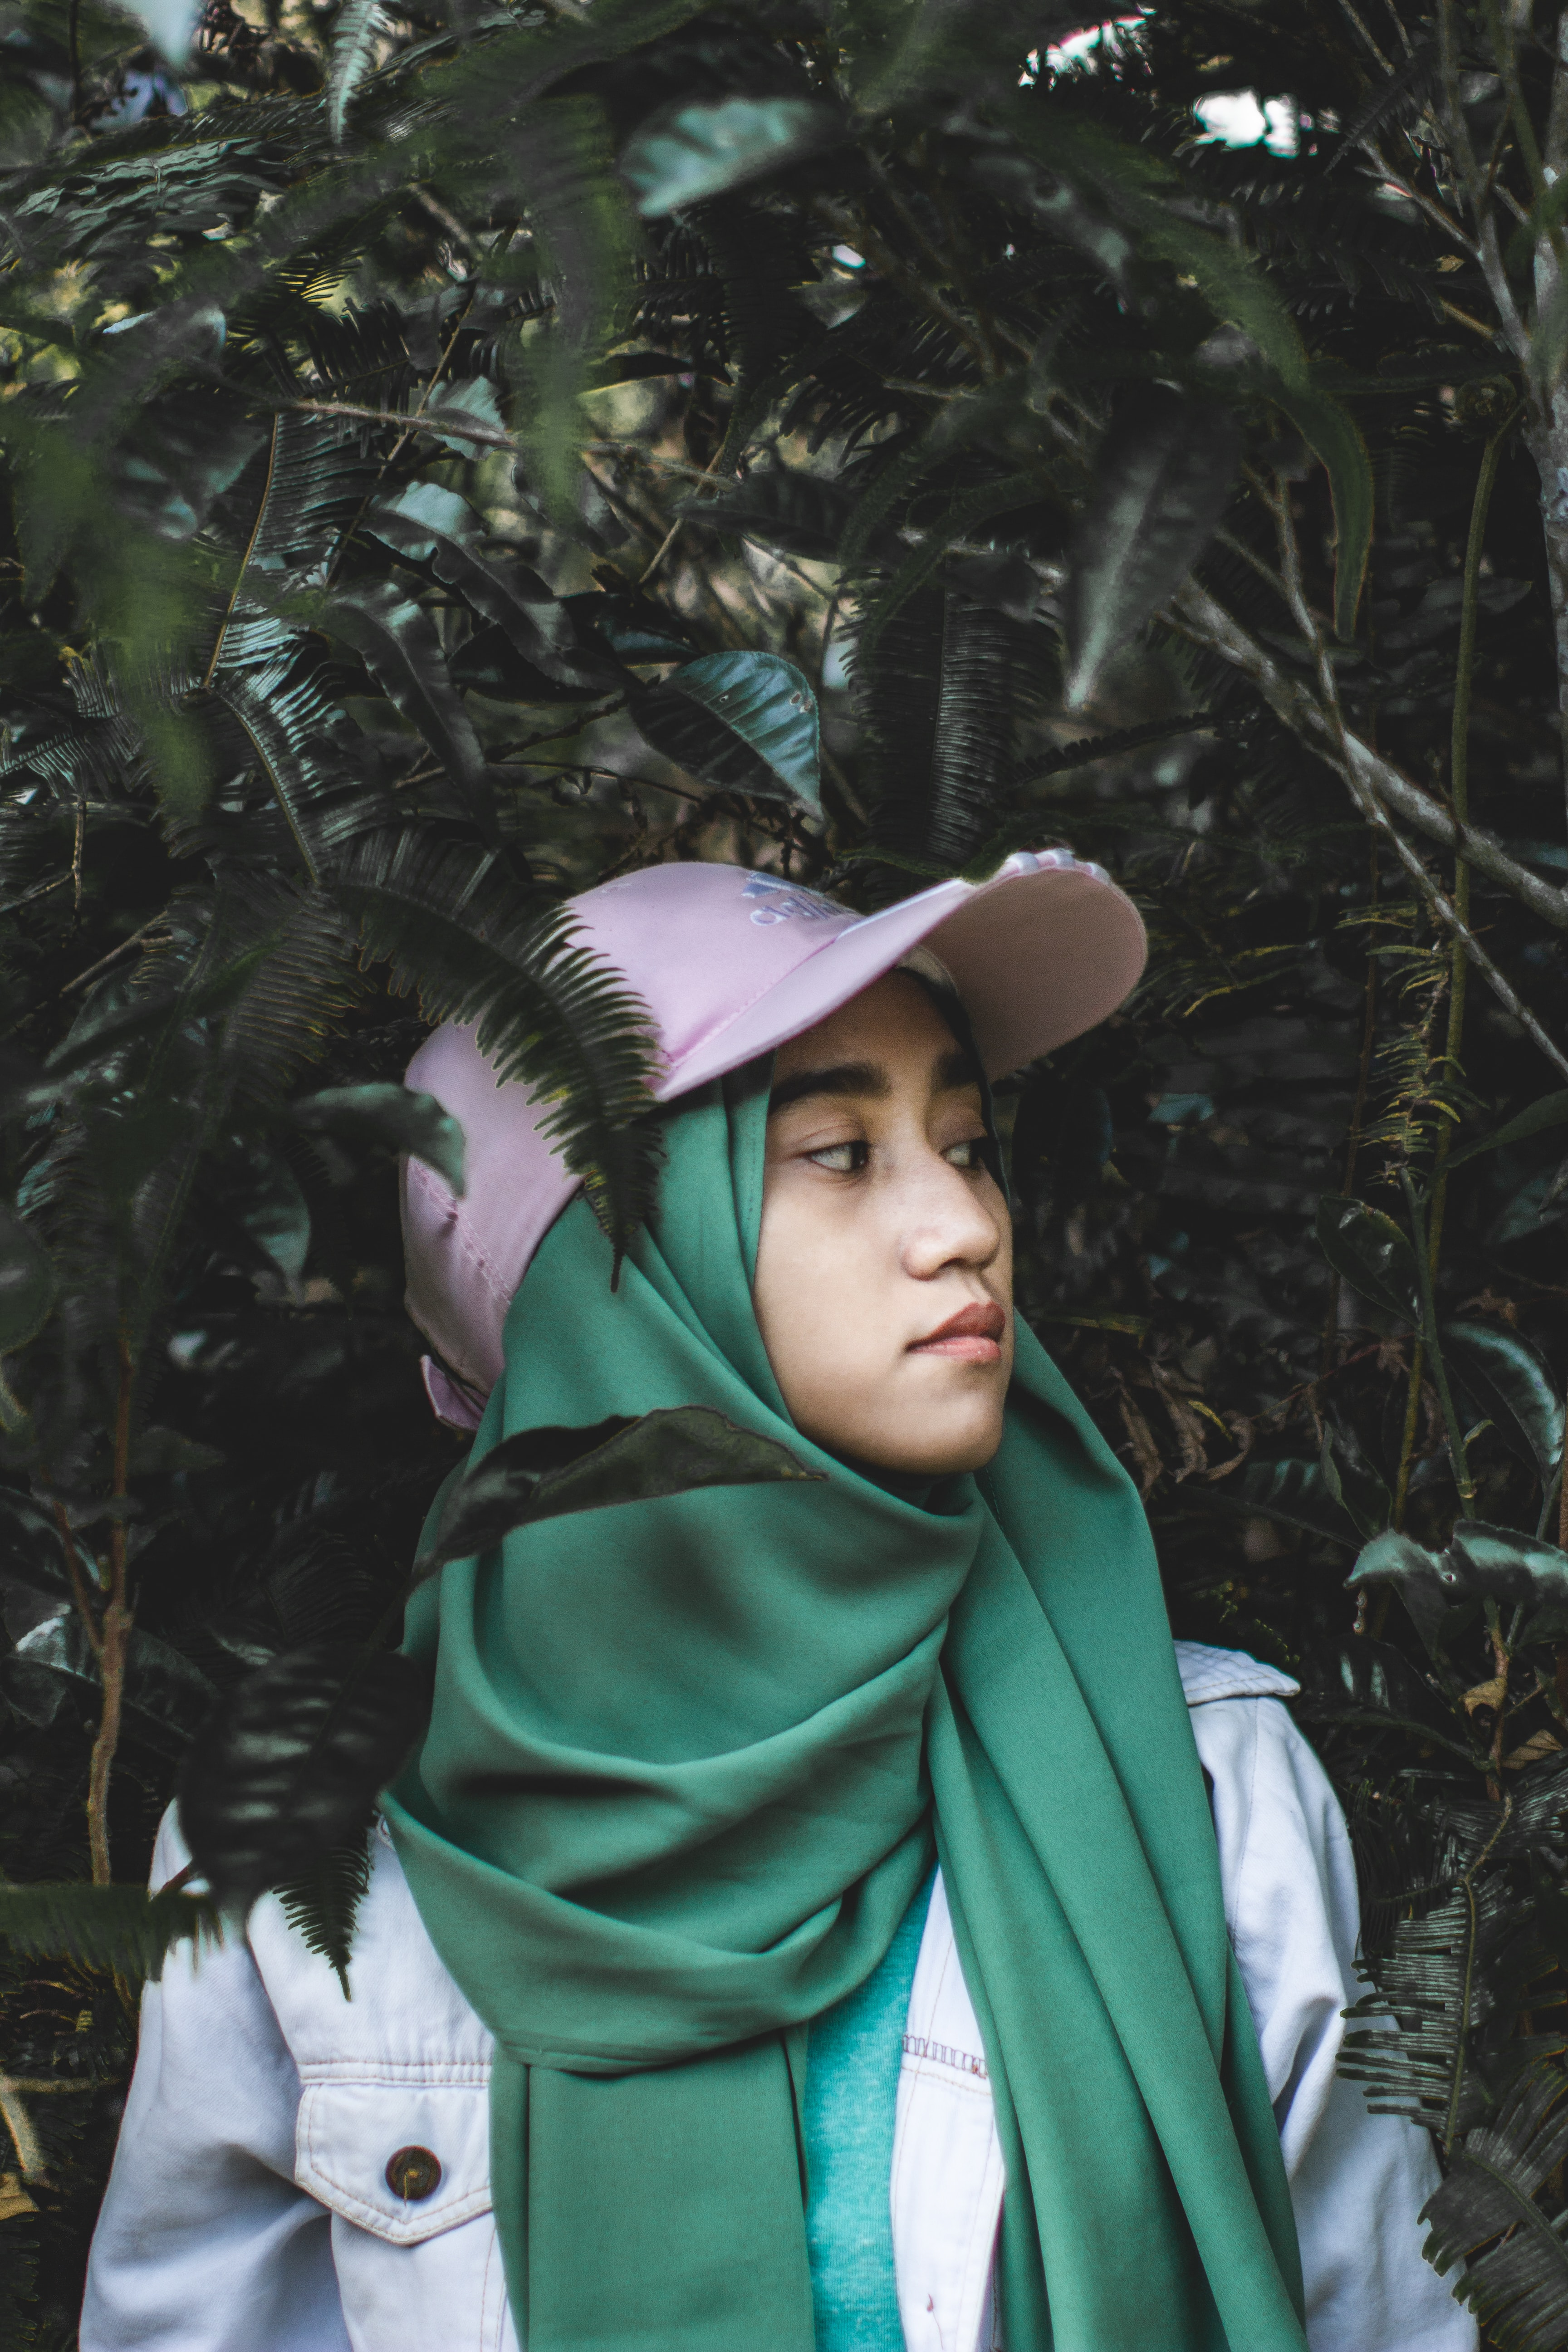 Image of: Niqab Woman Standing Between Trees Stylostreet 500 Hijab Pictures hd Download Free Images On Unsplash